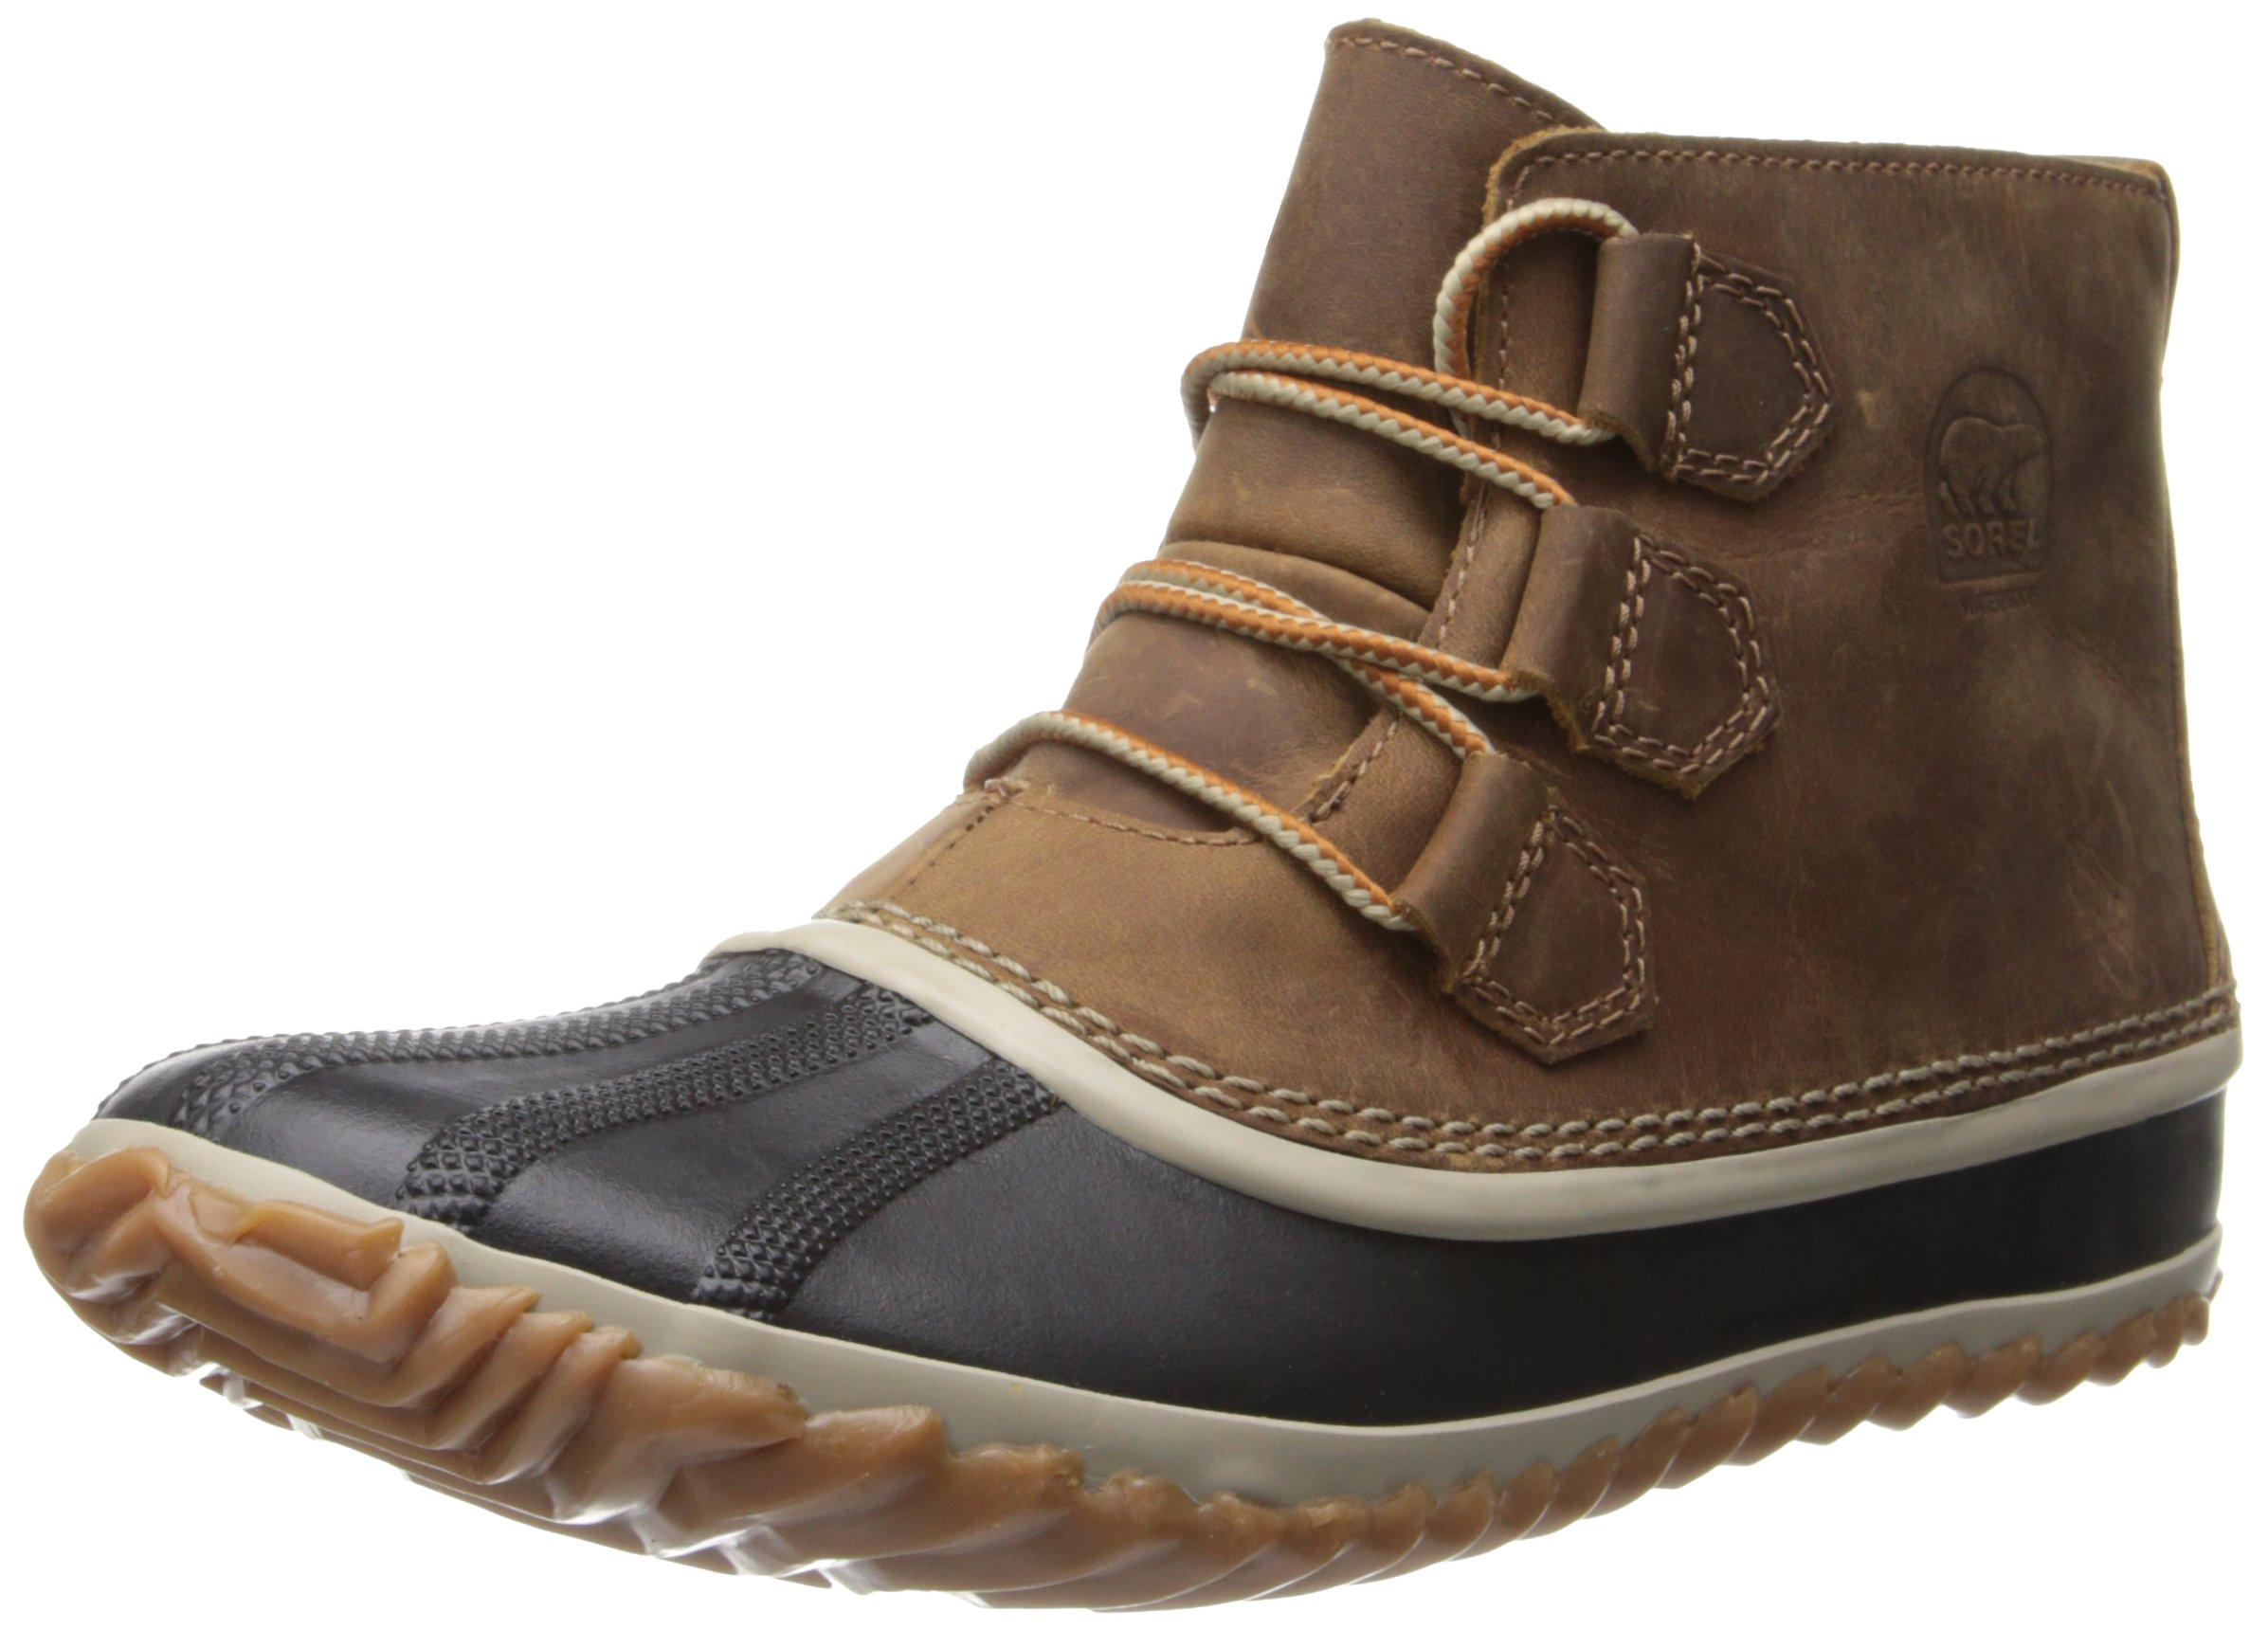 Sorel Women's Out N about Leather Snow Boot,Elk,10.5 M US